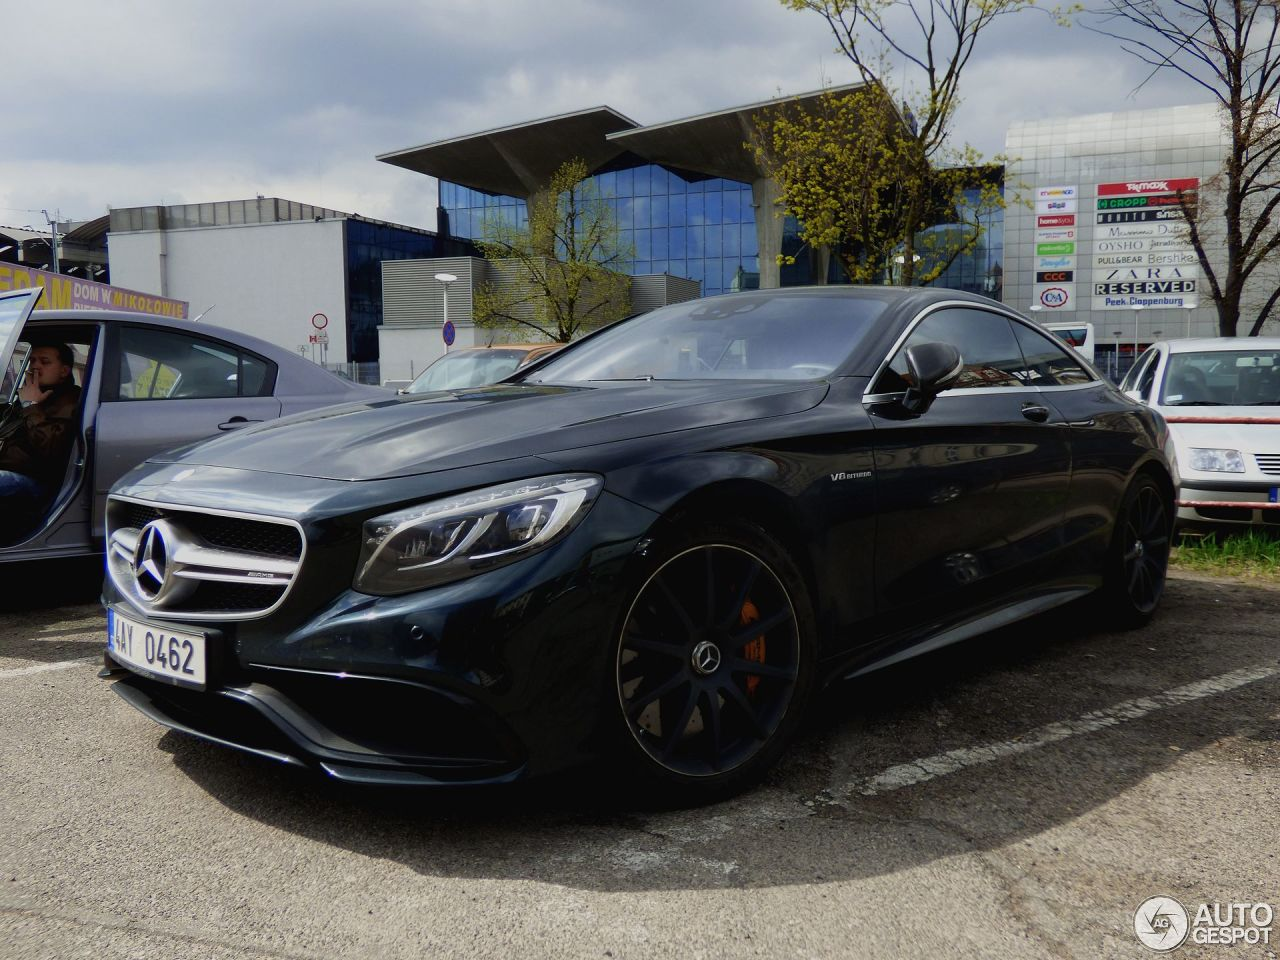 Mercedes benz s 63 amg coup c217 8 czerwiec 2017 for 2017 mercedes benz amg s 63 coupe